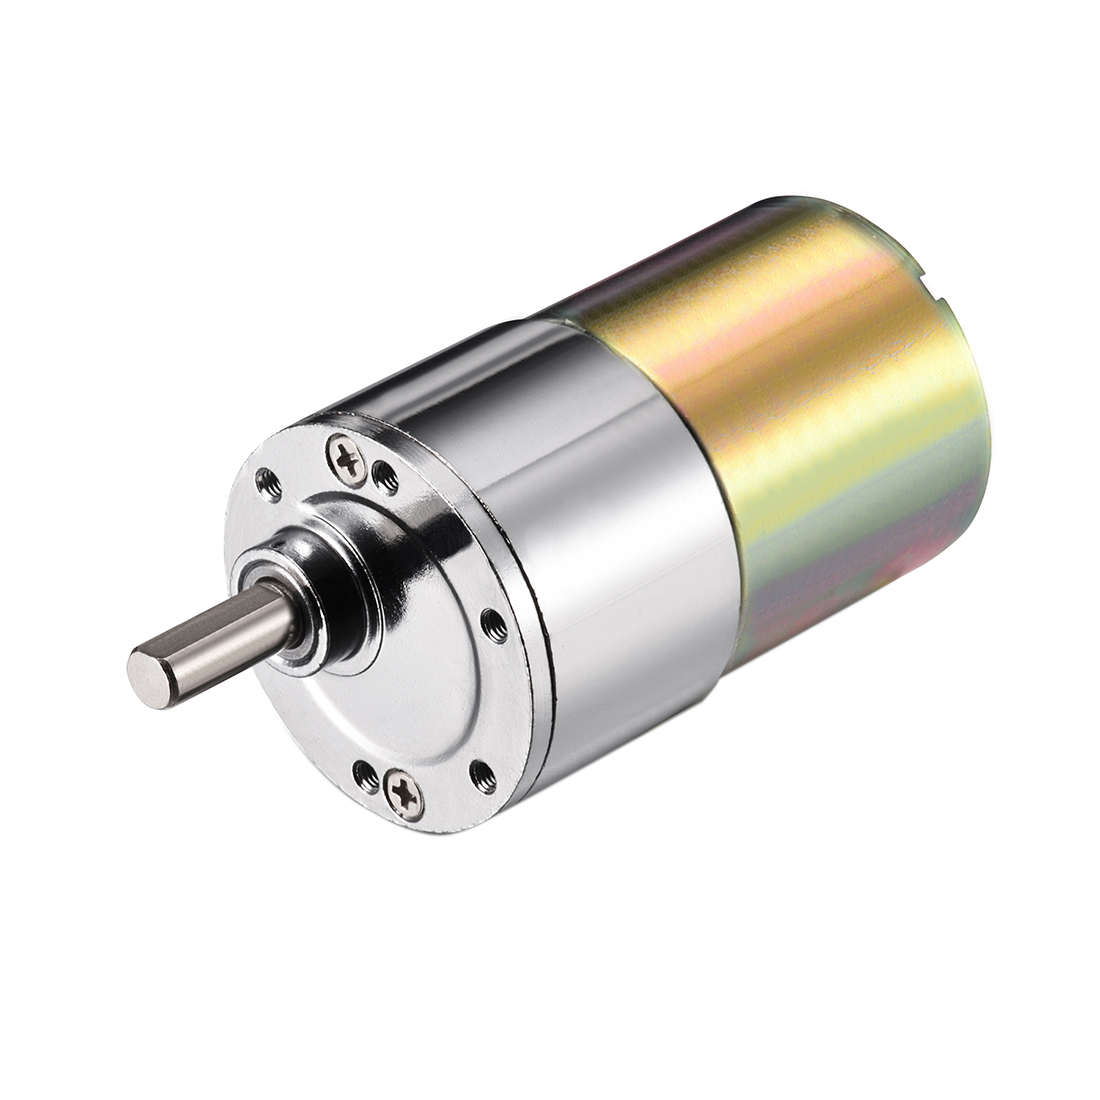 DC 12V 40RPM Micro Gear Box Motor Speed Reduction Electric Gearbox Eccentric Output Shaft